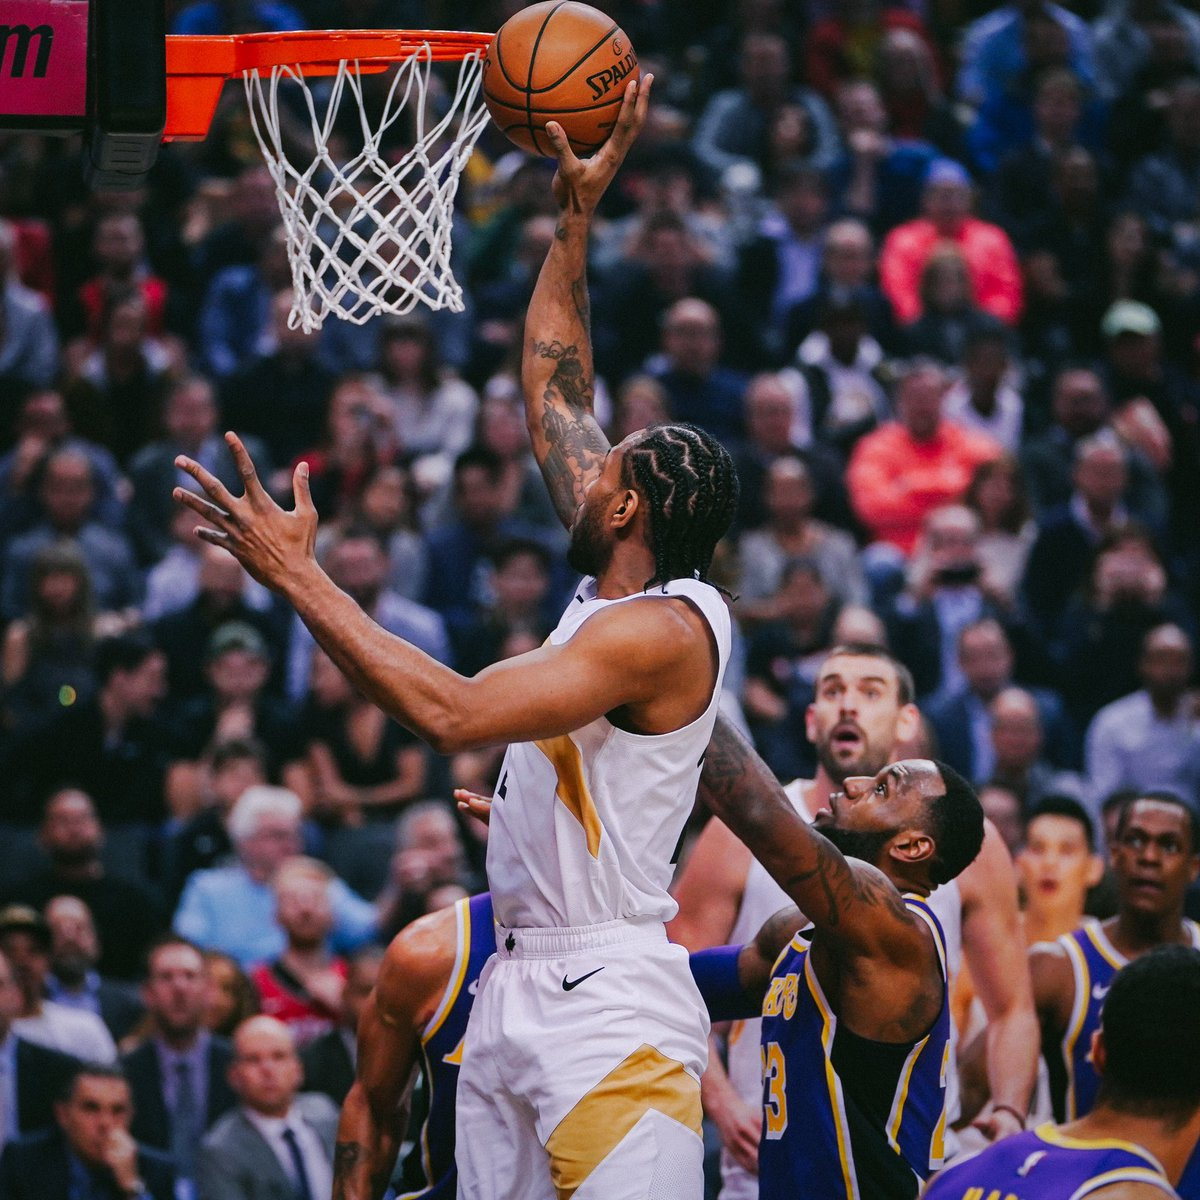 Kawhi supera LeBron e Raptors batem os Lakers no Canadá